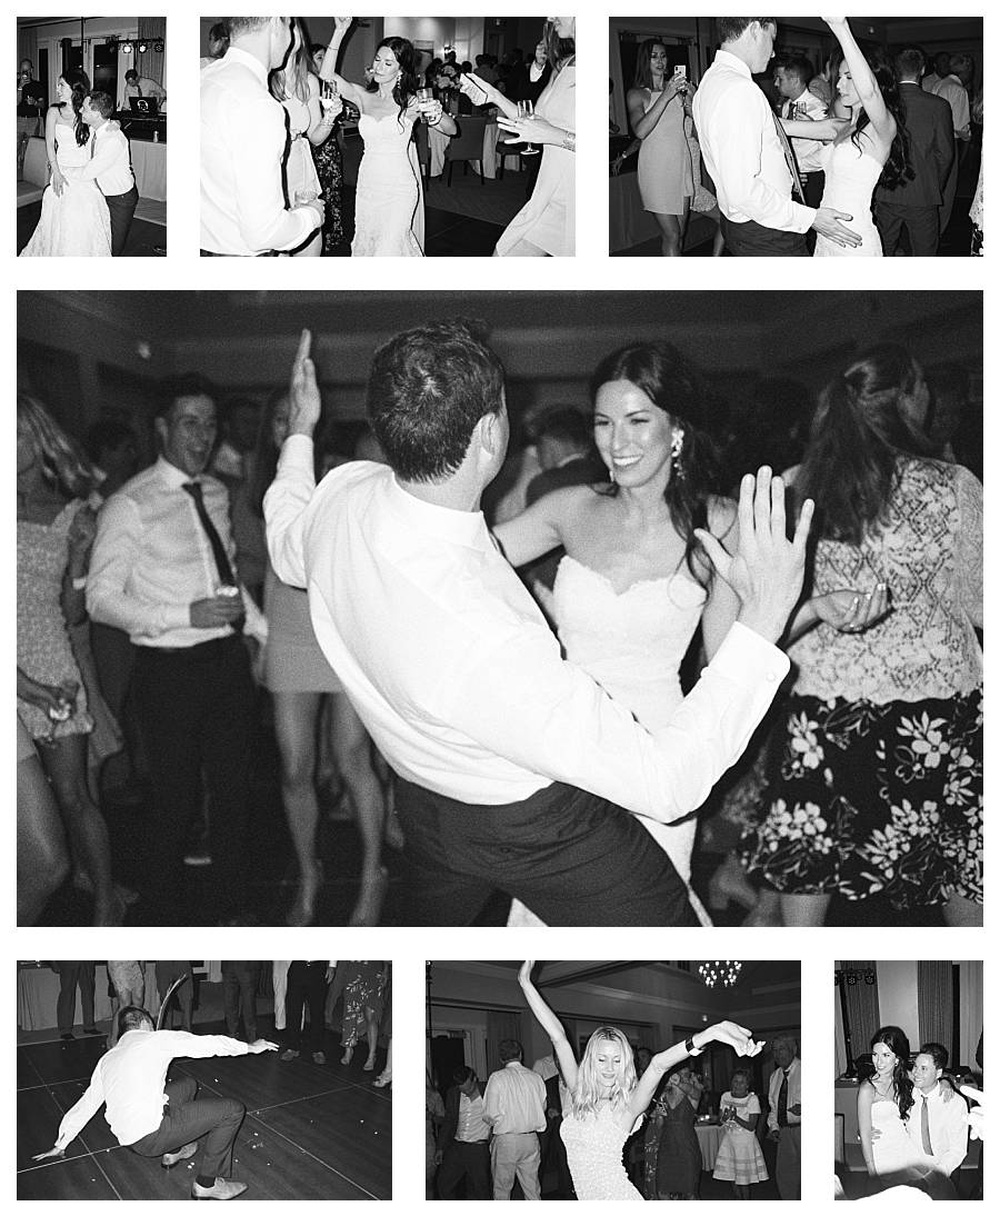 Wedding Reception - Why You Hire The Good Photographer to Capture